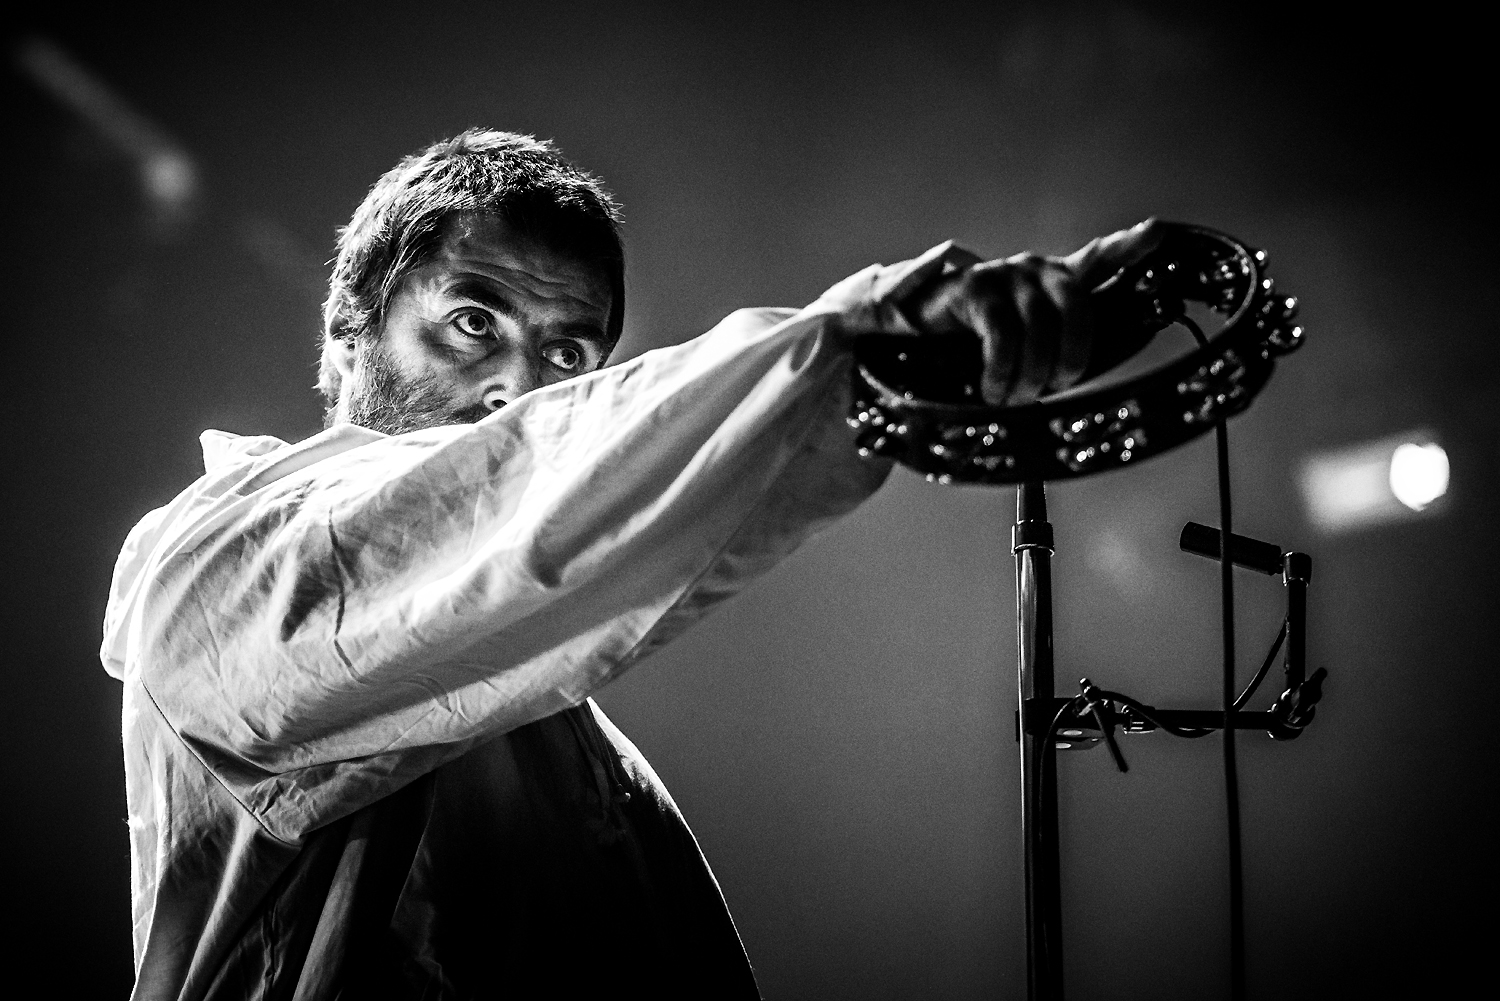 Liam Gallagher @ Vorst Nationaal 2020 (Jan Van den Bulck)